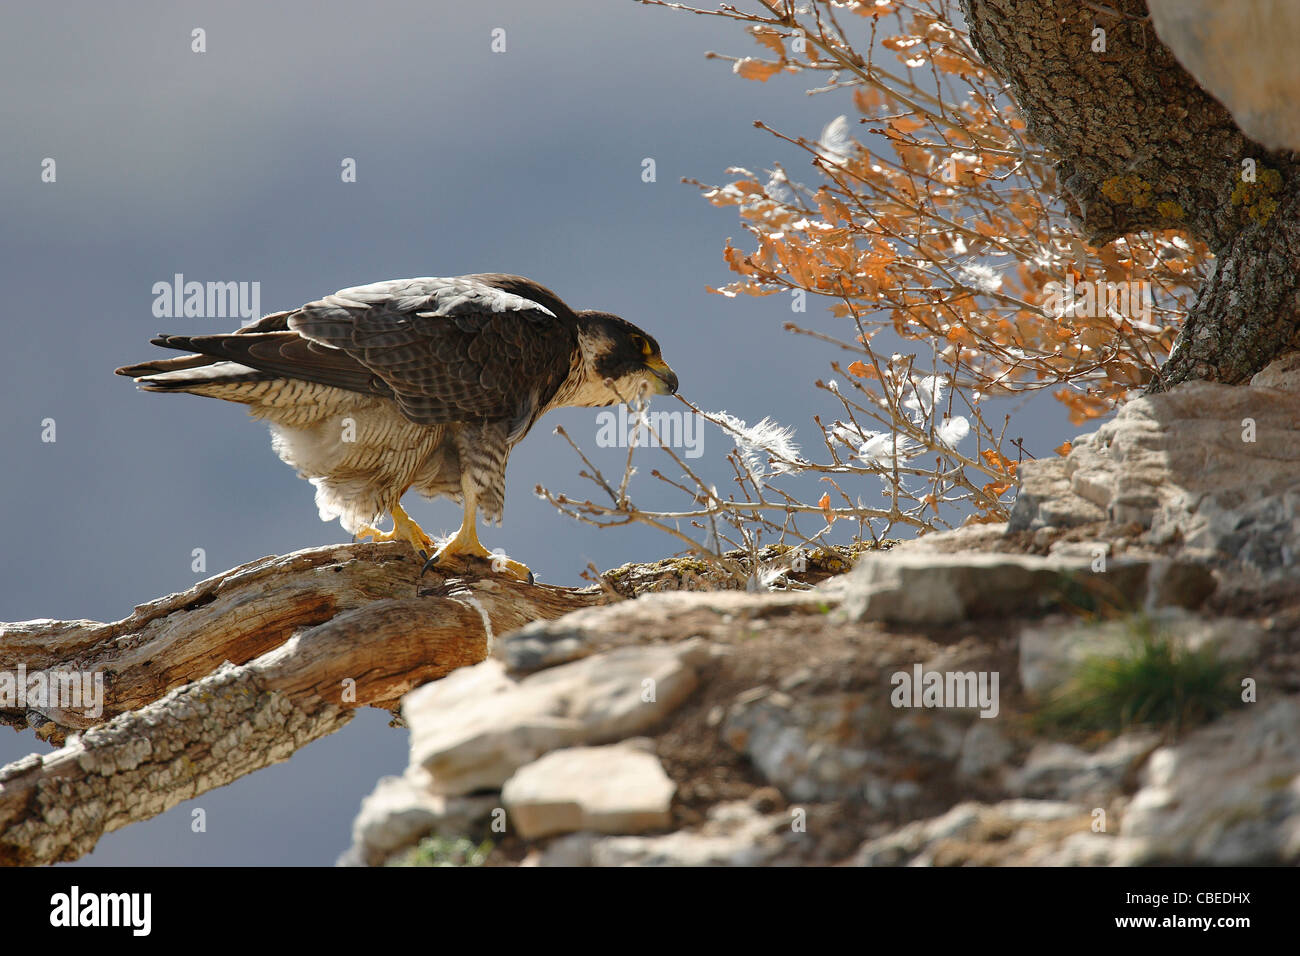 Peregrine Falcon (Falco peregrinus) standing on a broken off branch while pulling on a twig. - Stock Image